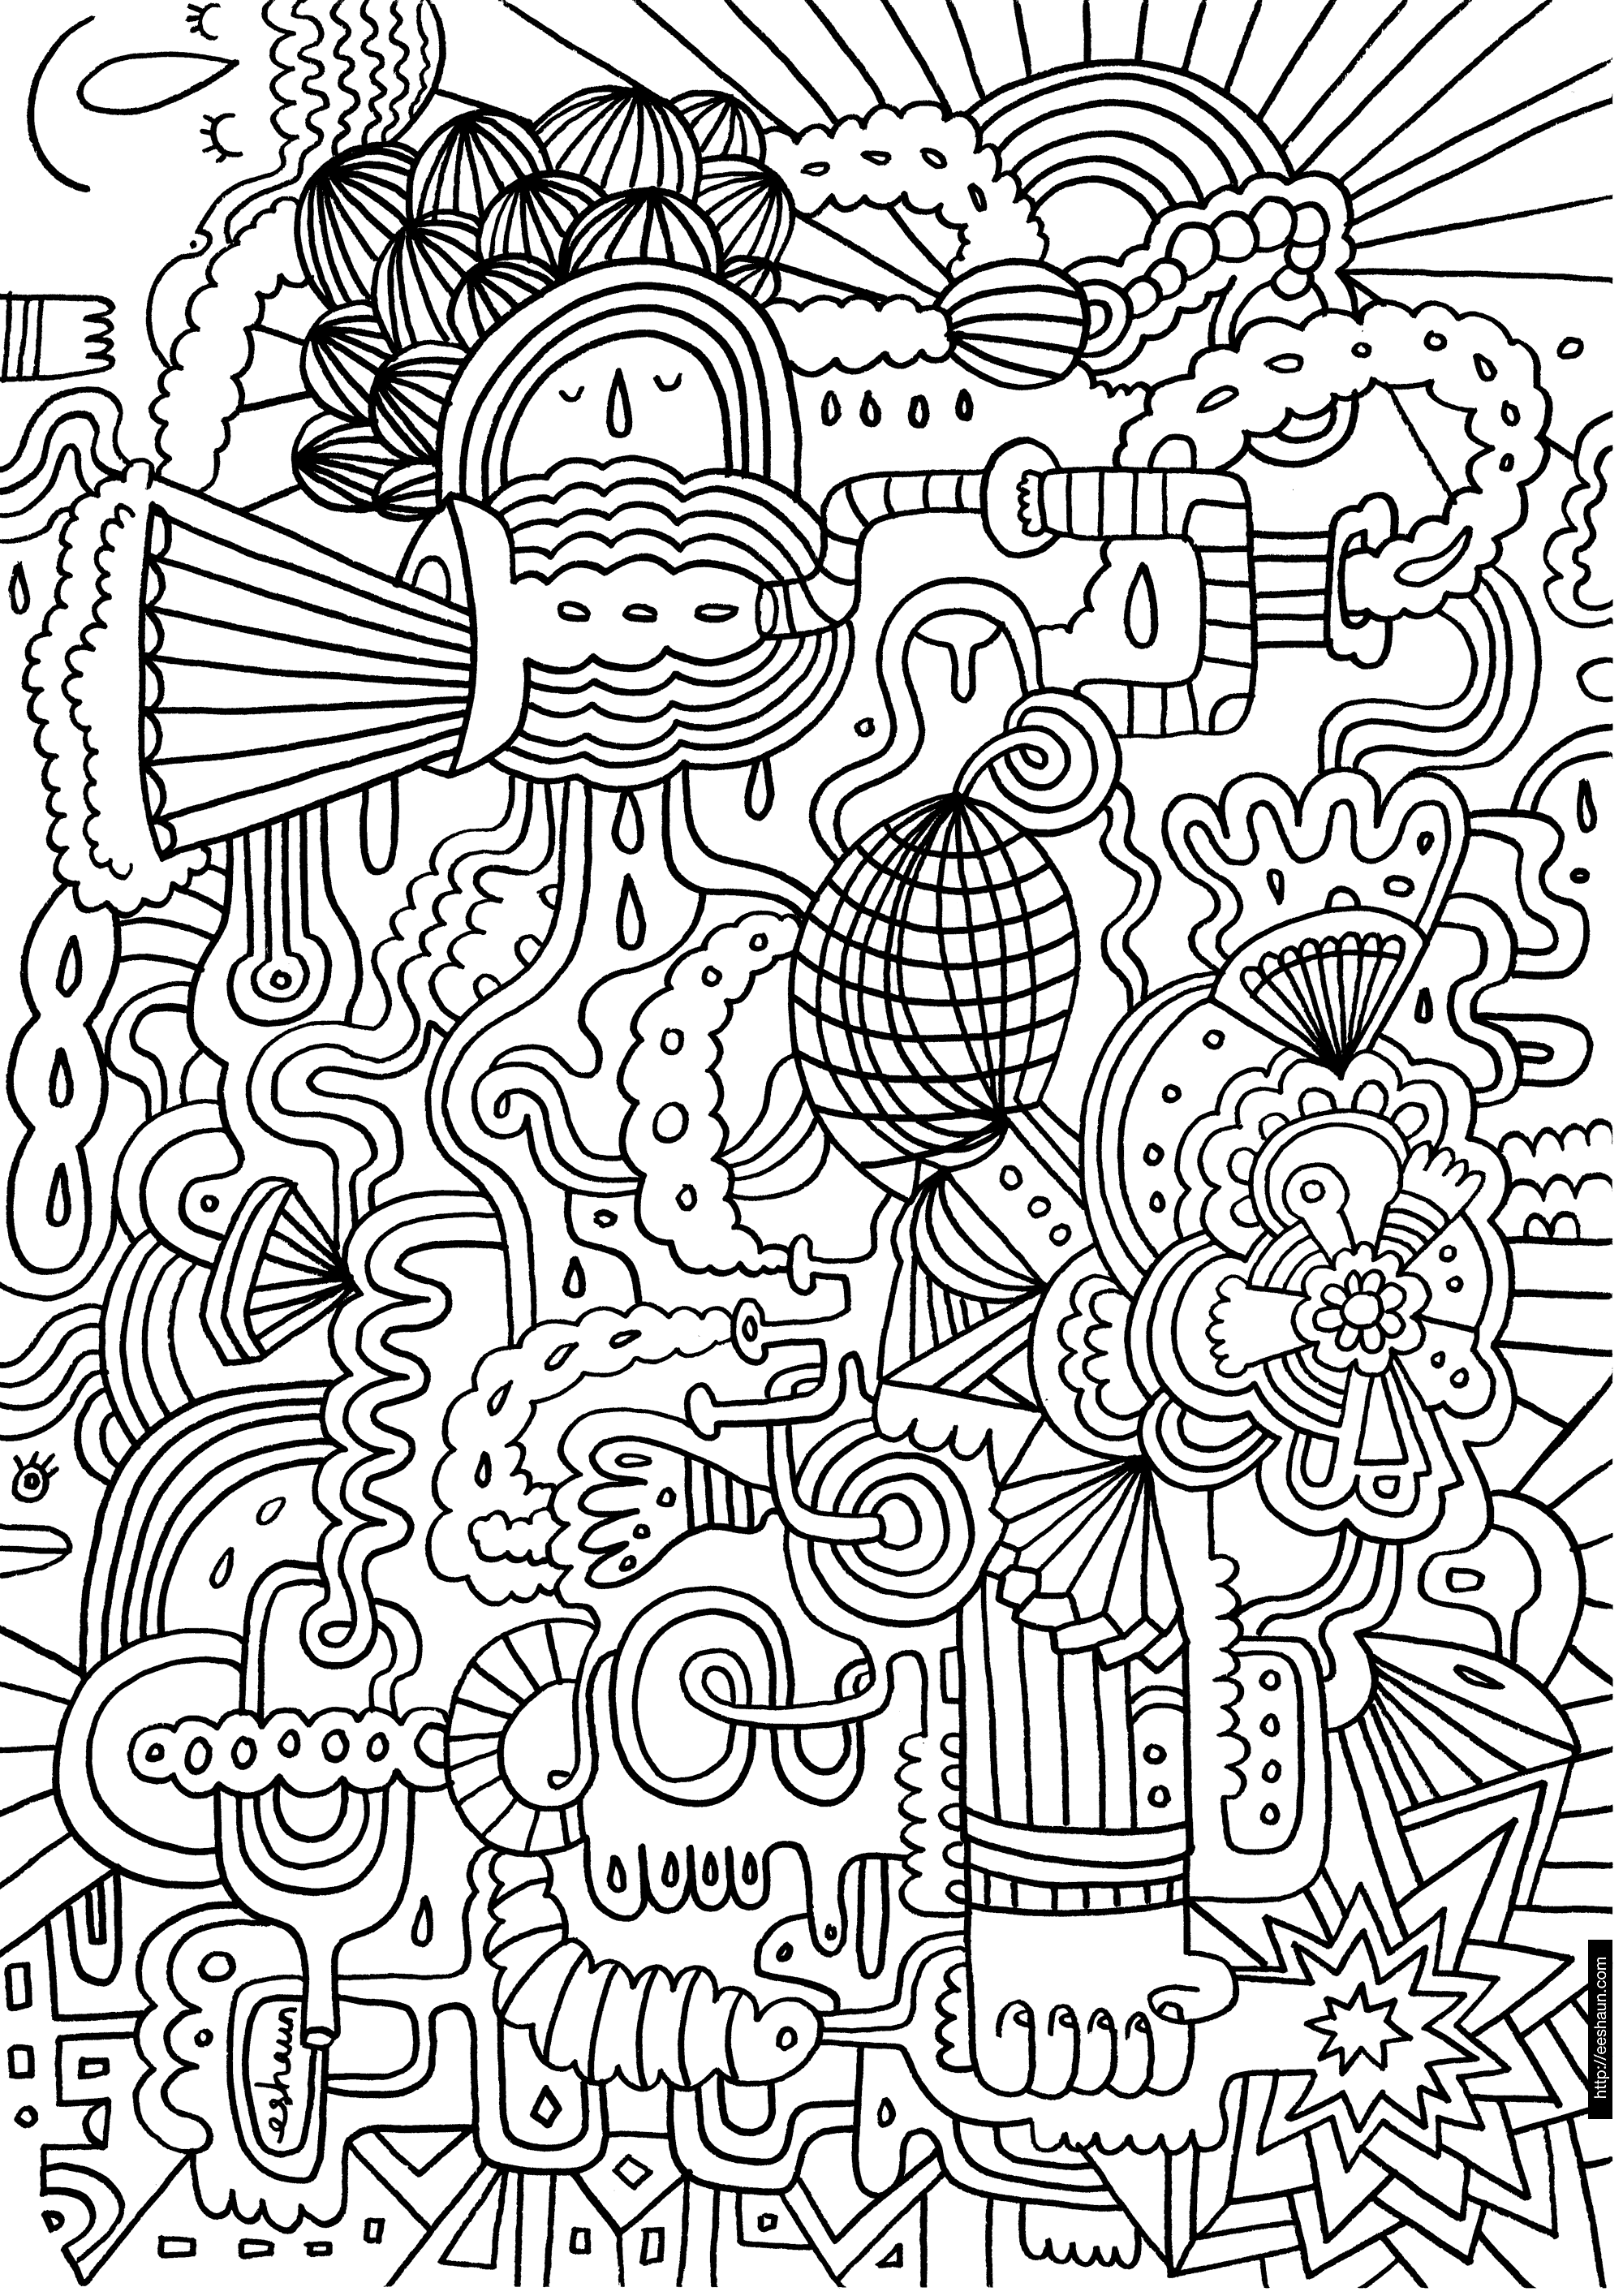 Printable adult thanksgiving coloring sheet - Hard Coloring Pages Free Large Images